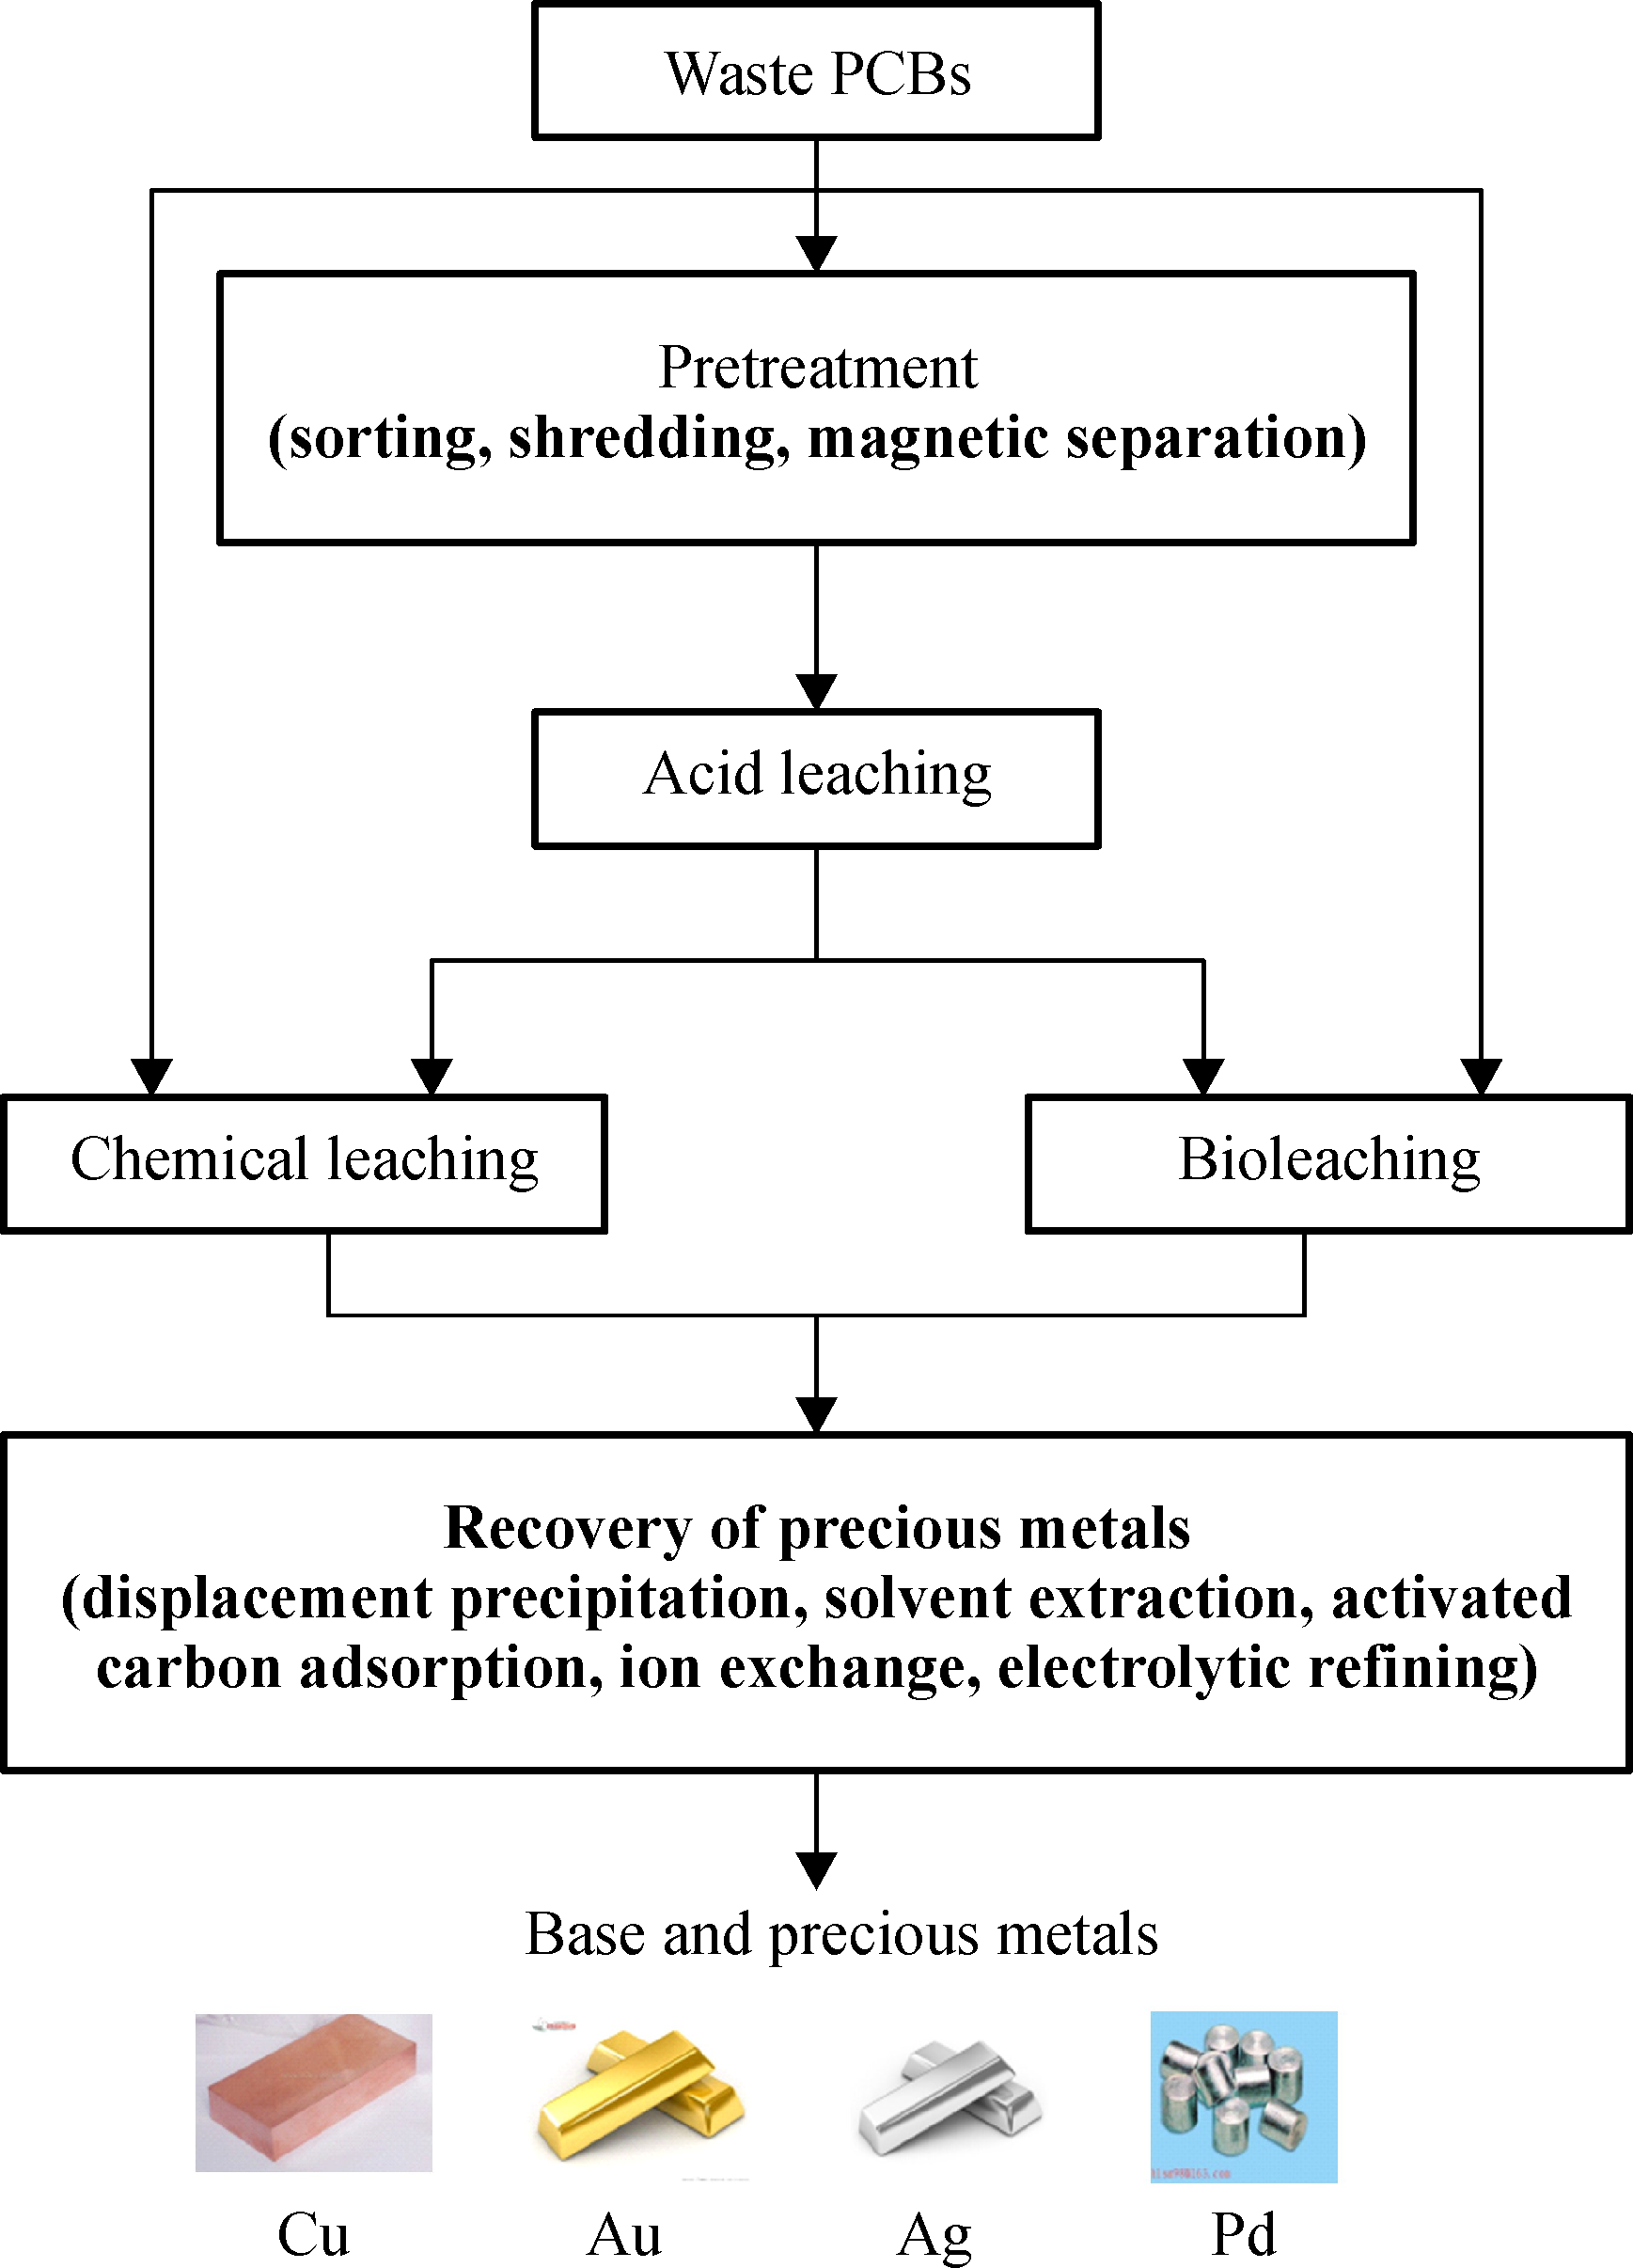 A Critical Review On The Recycling Of Copper And Precious Metals Printed Circuit Board Pcb Machine Waste New Window